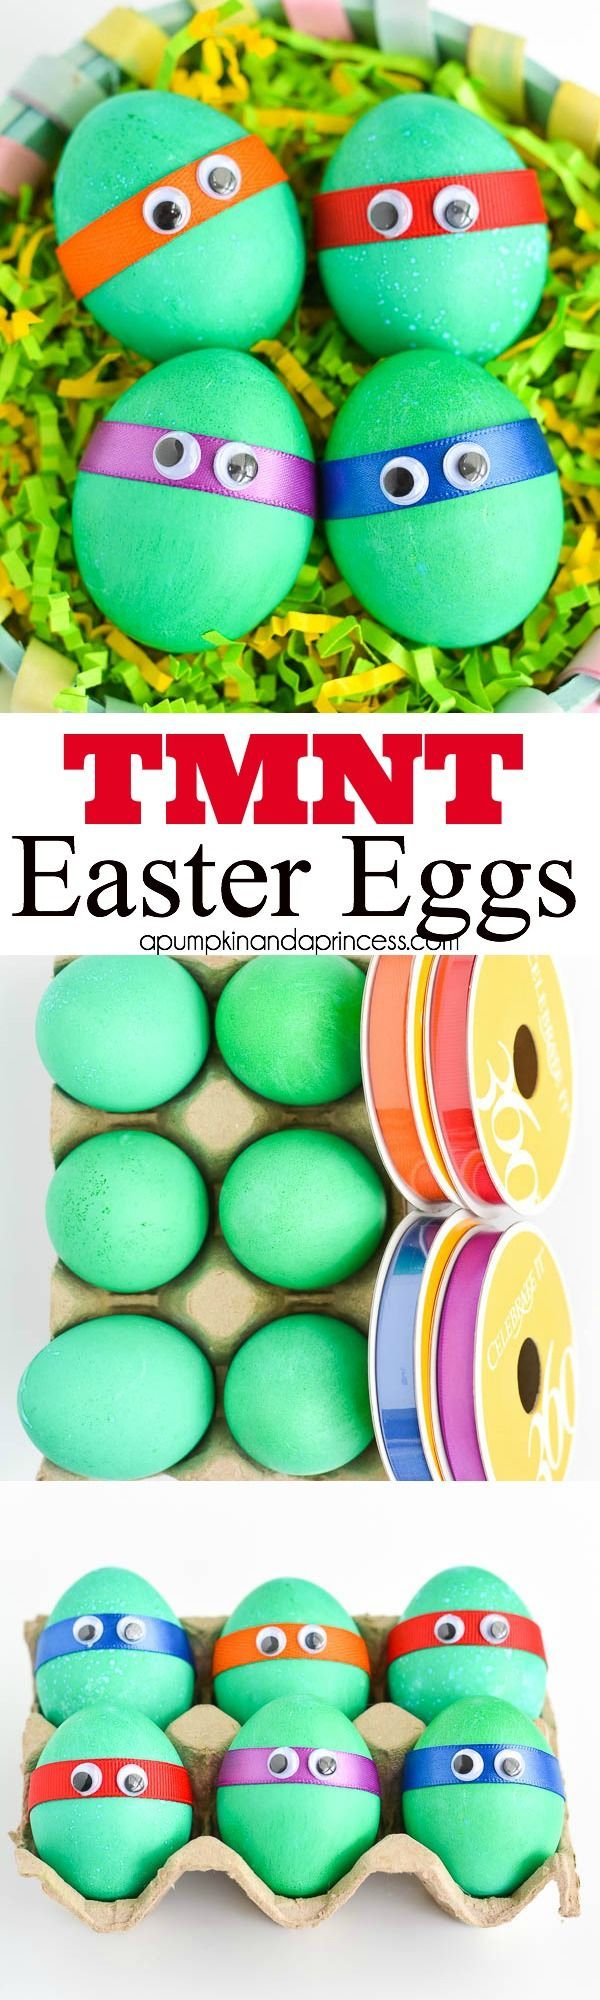 Dyed Ninja Turtles Easter Eggs - A Pumpkin And A Princess